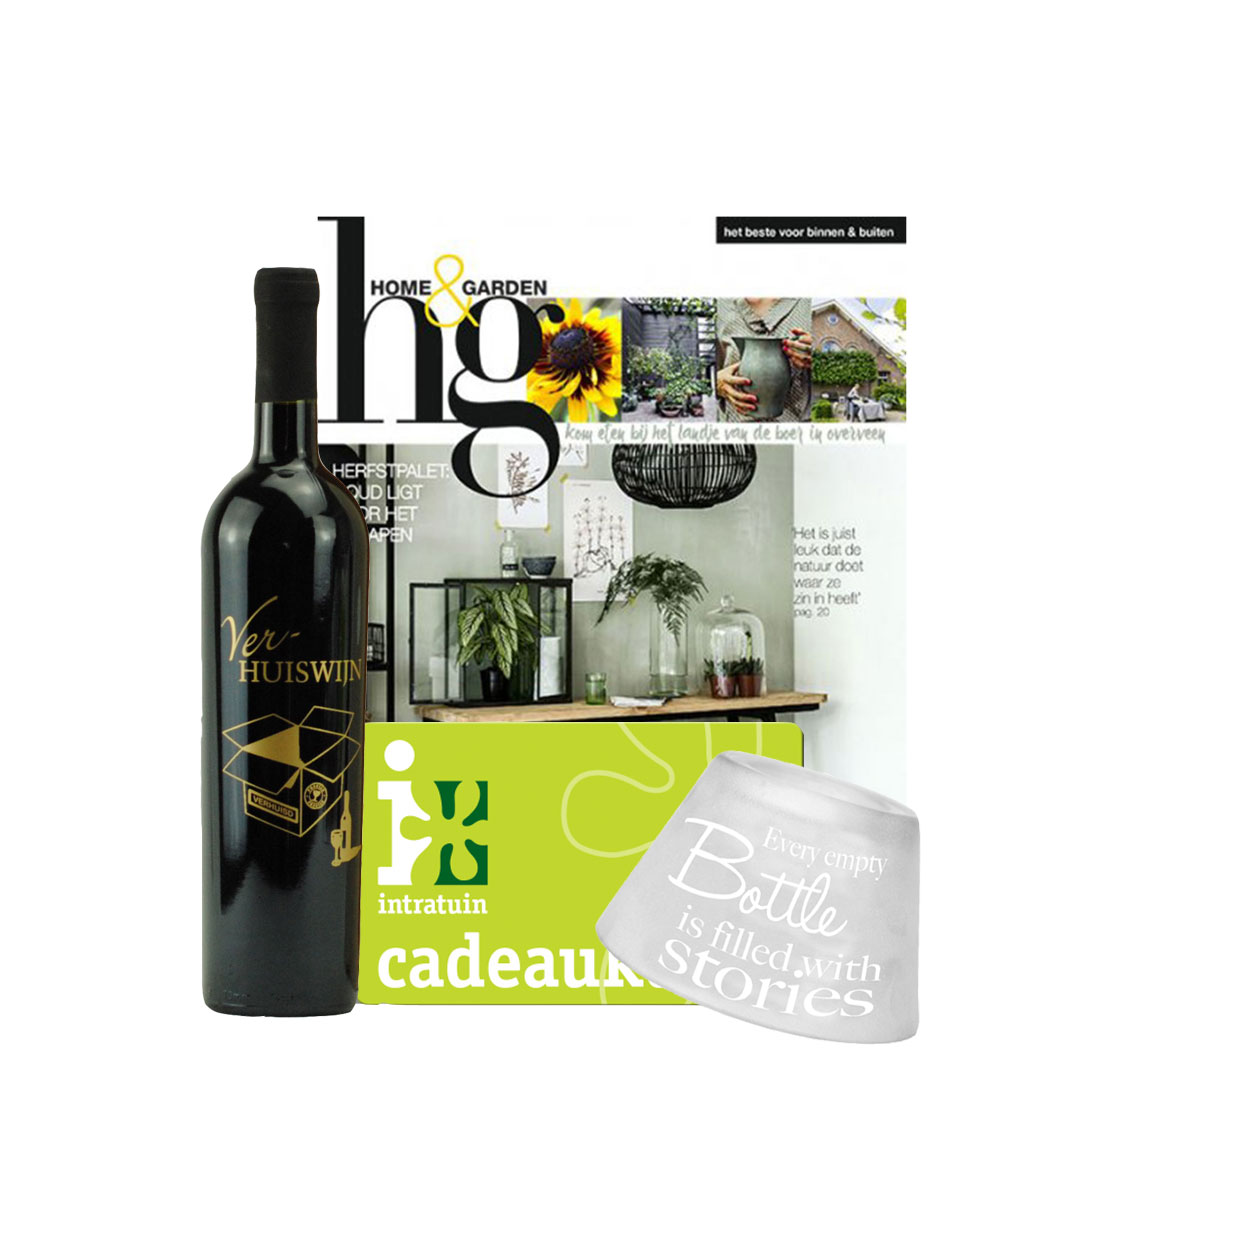 Intratuin cadeaukaart 15 euro home garden for Intratuin cadeaubon